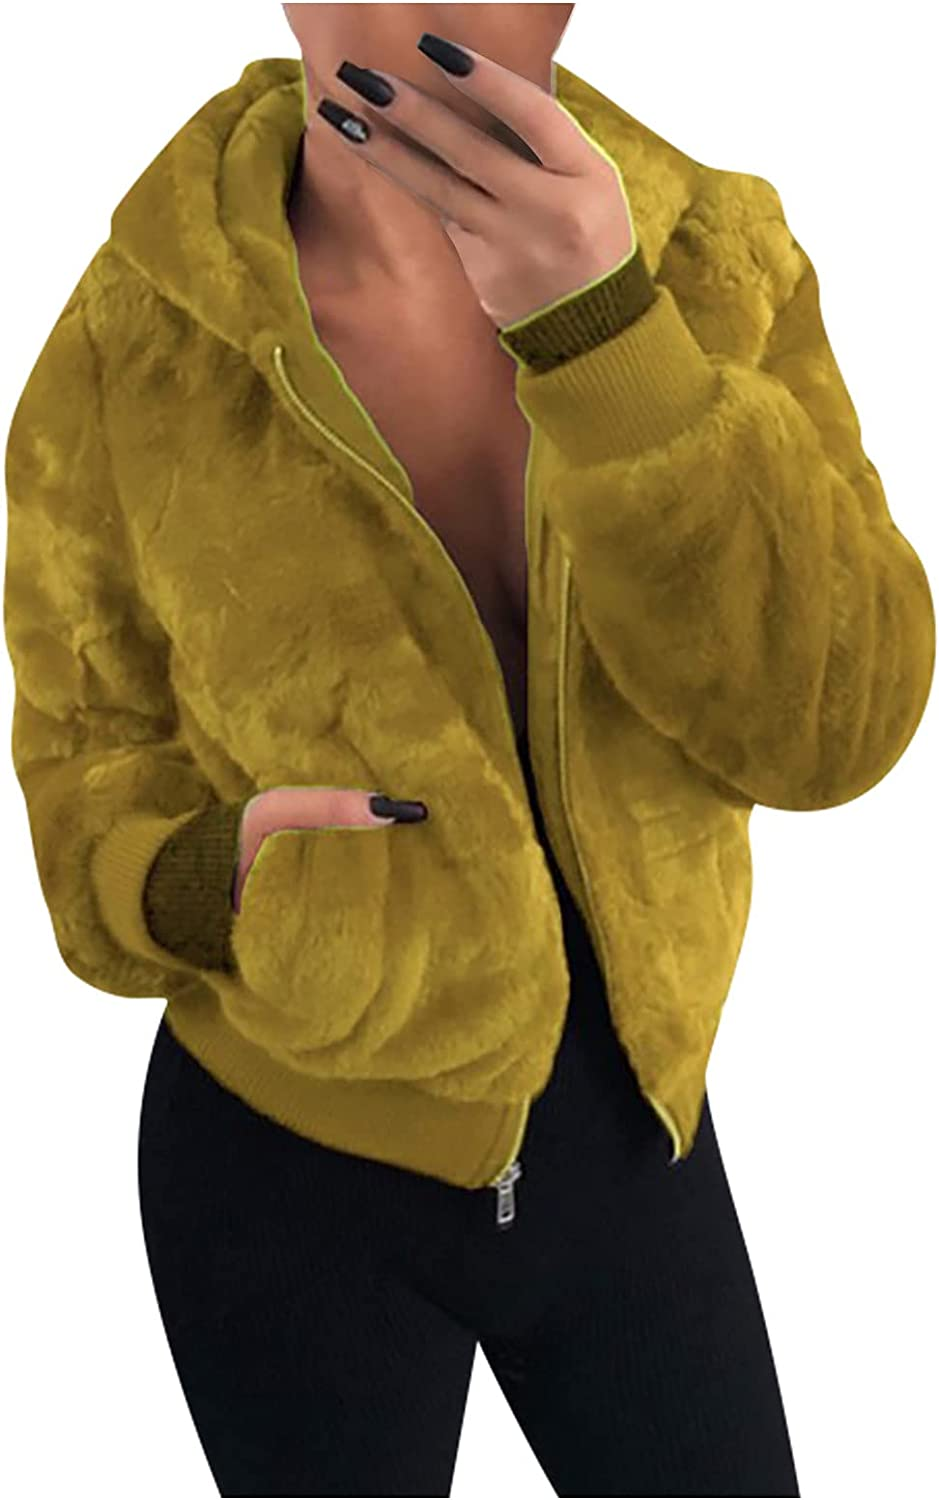 Winter Coats Women Zip up Fleece Long Sleeve Pockets Hooded Cropped Solid Color Plush Warm Jackets Tops Open Front Cardigan